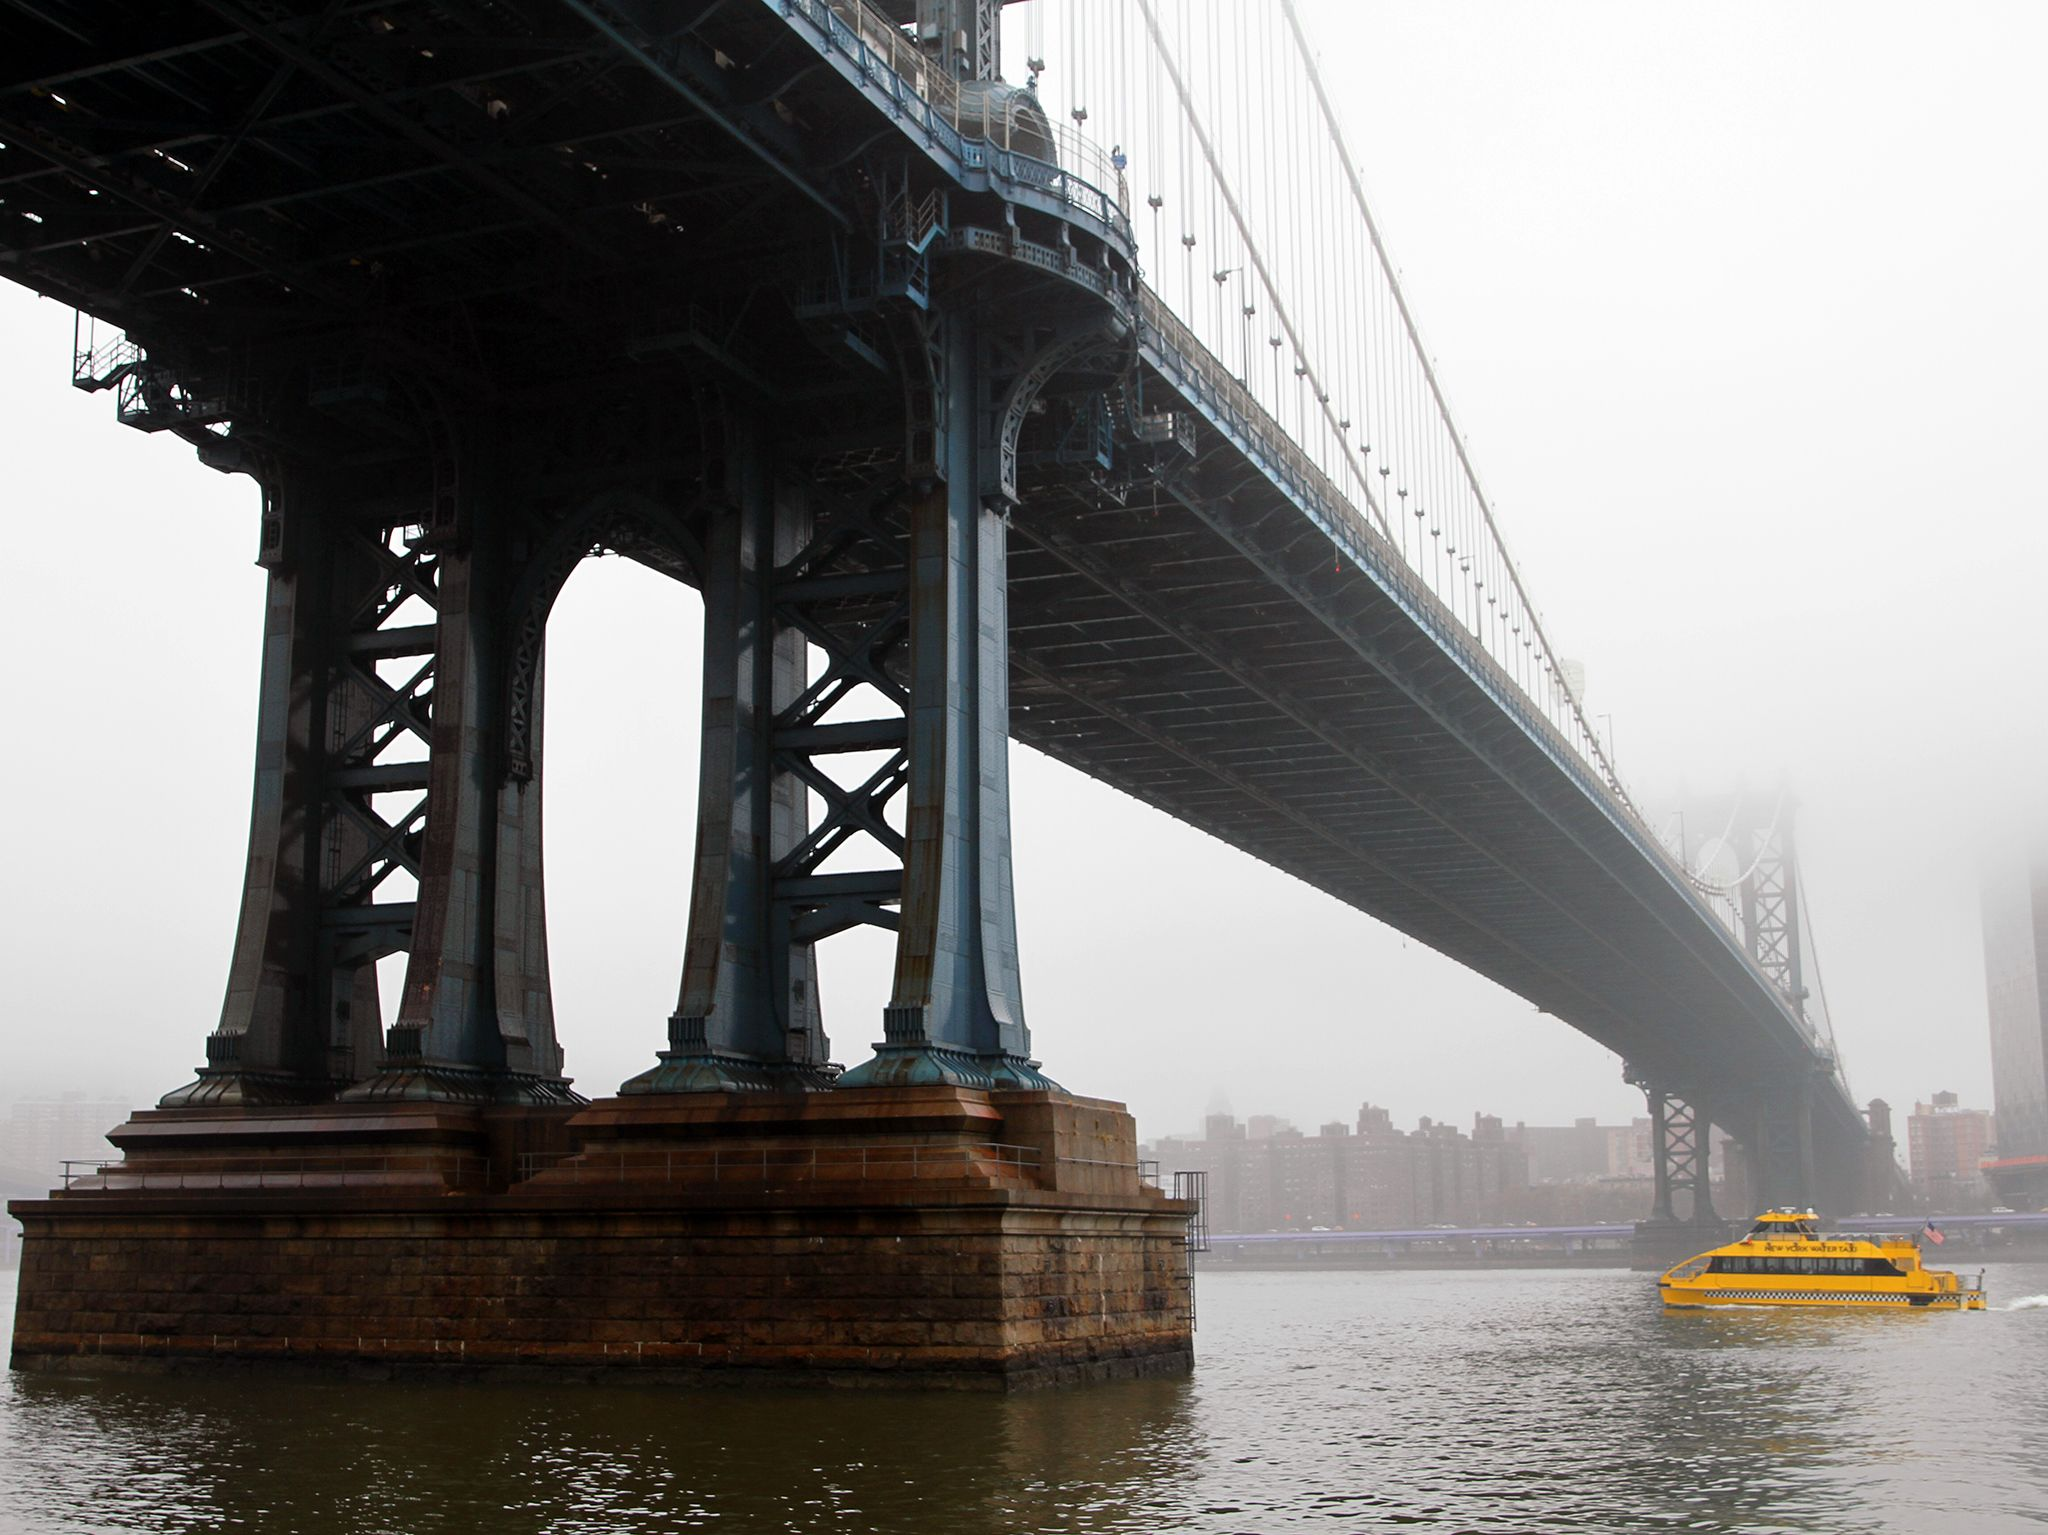 A New York Water Taxi passes under Manhattan Bridge as fog encloses the city. This image is from... [Photo of the day - April 2020]